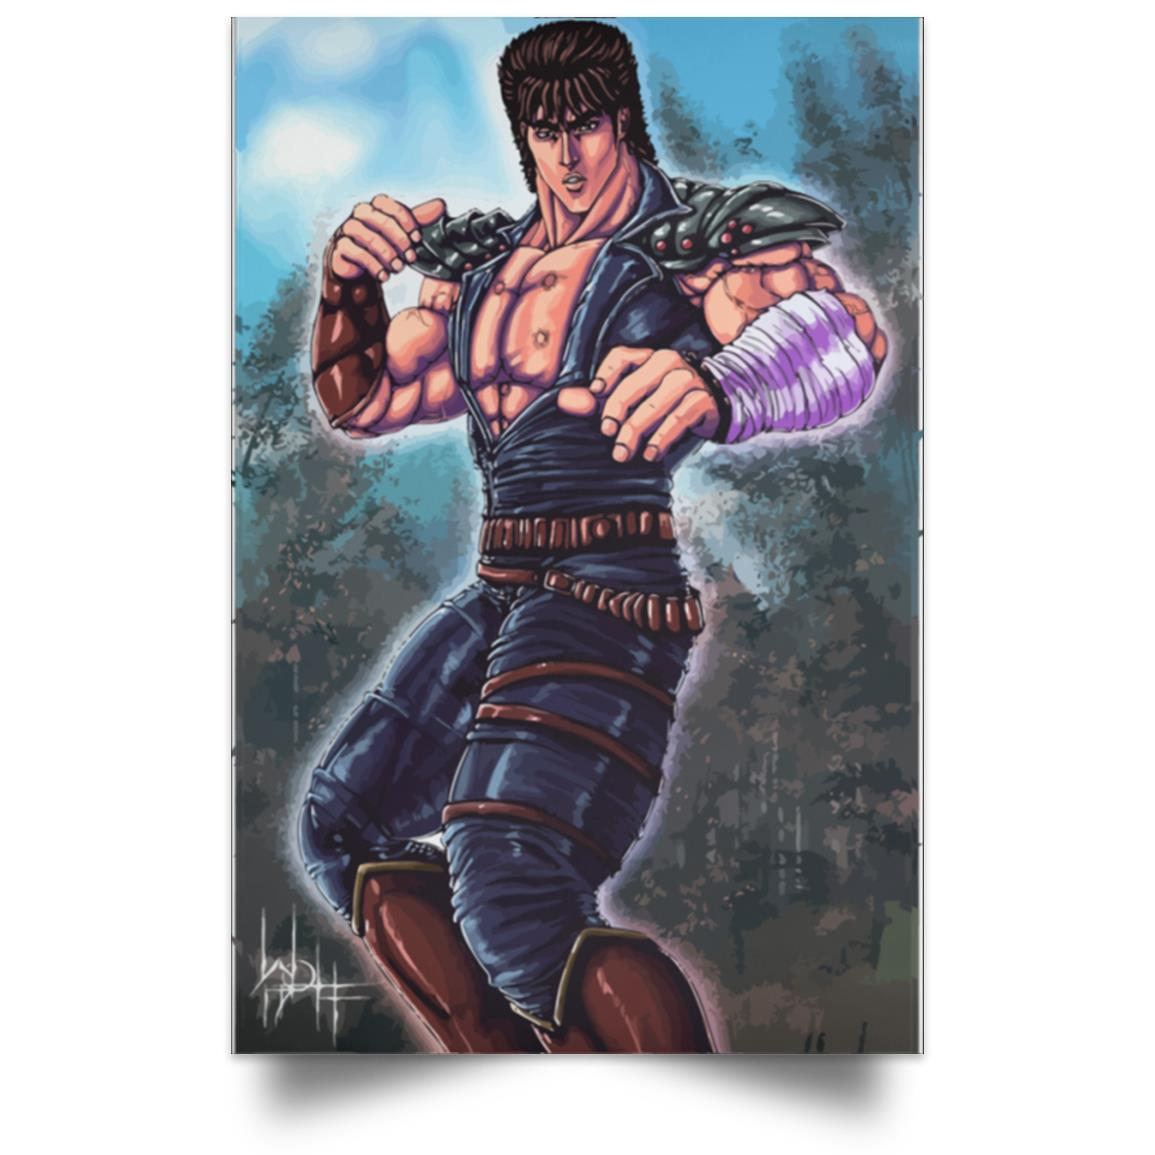 POSTER FIST OF THE NORTH STAR KENSHIRO PRÊT À COMBATTRE 1